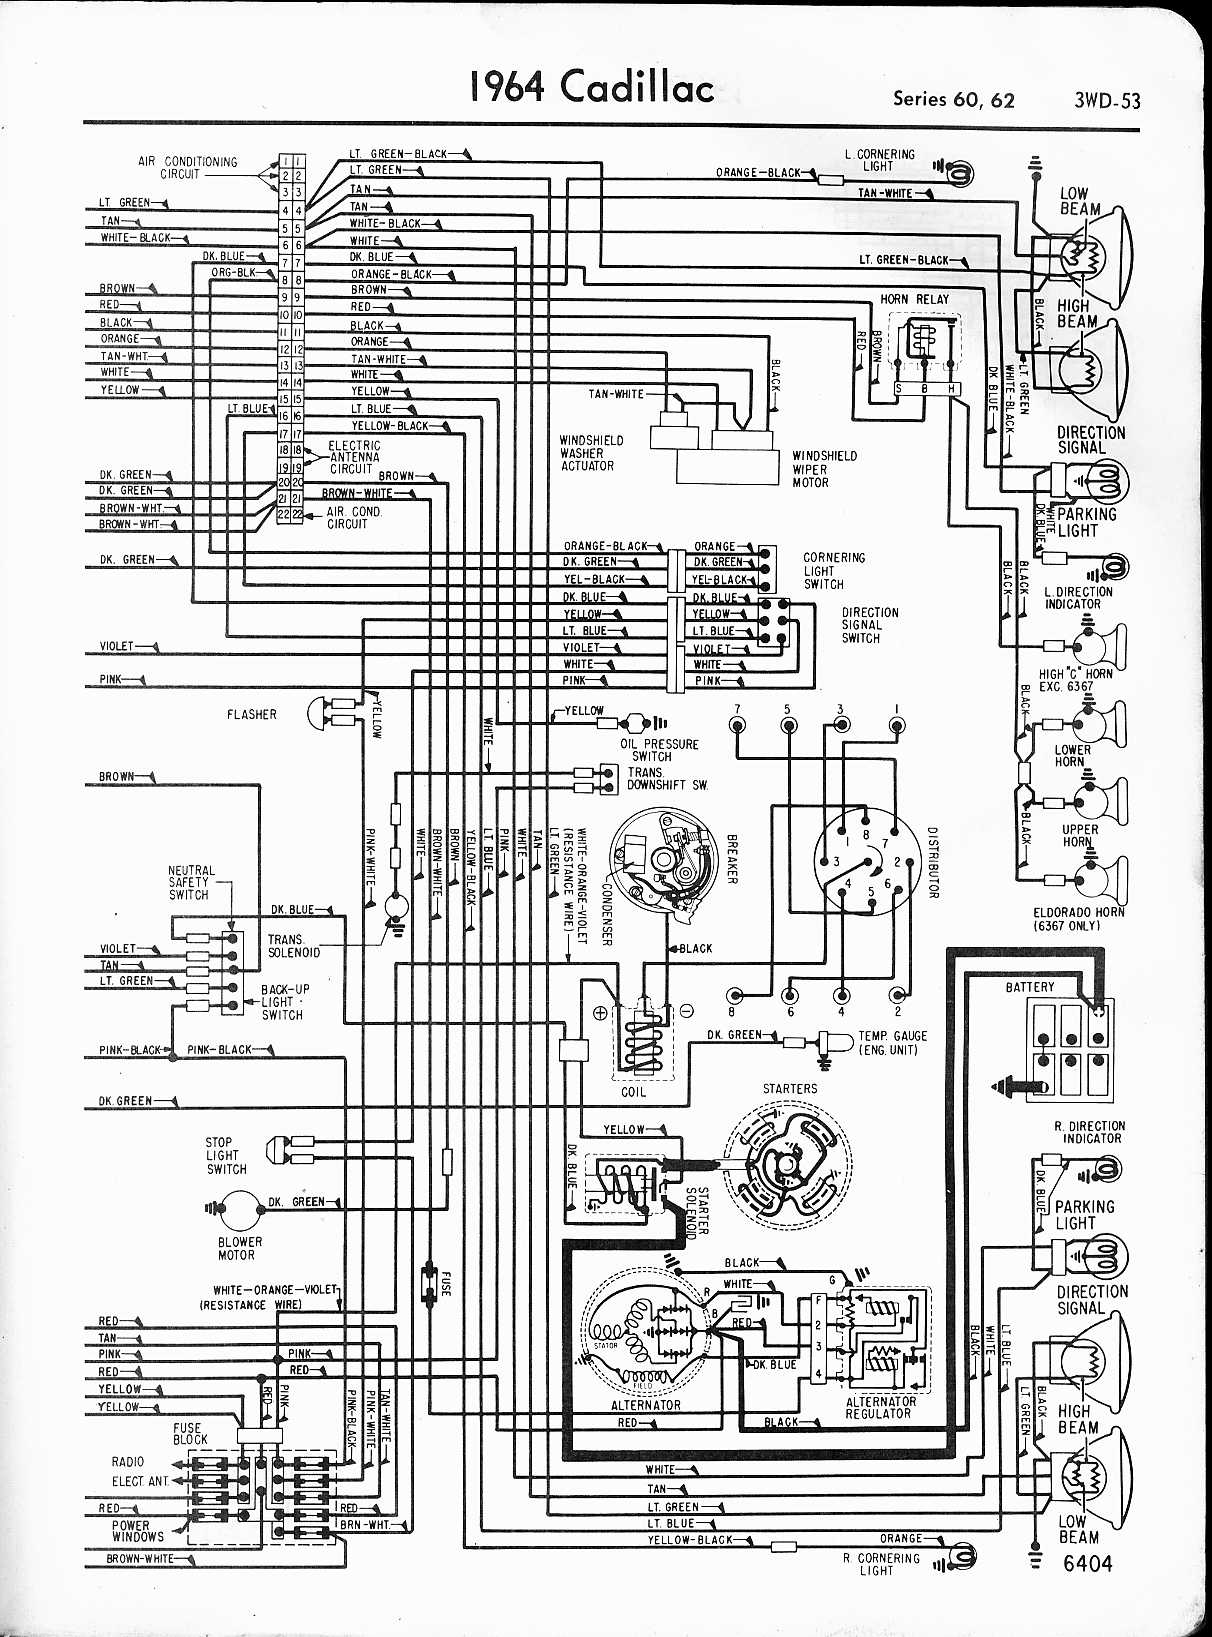 Westinghouse 77021 Wiring Diagram from f01.justanswer.com